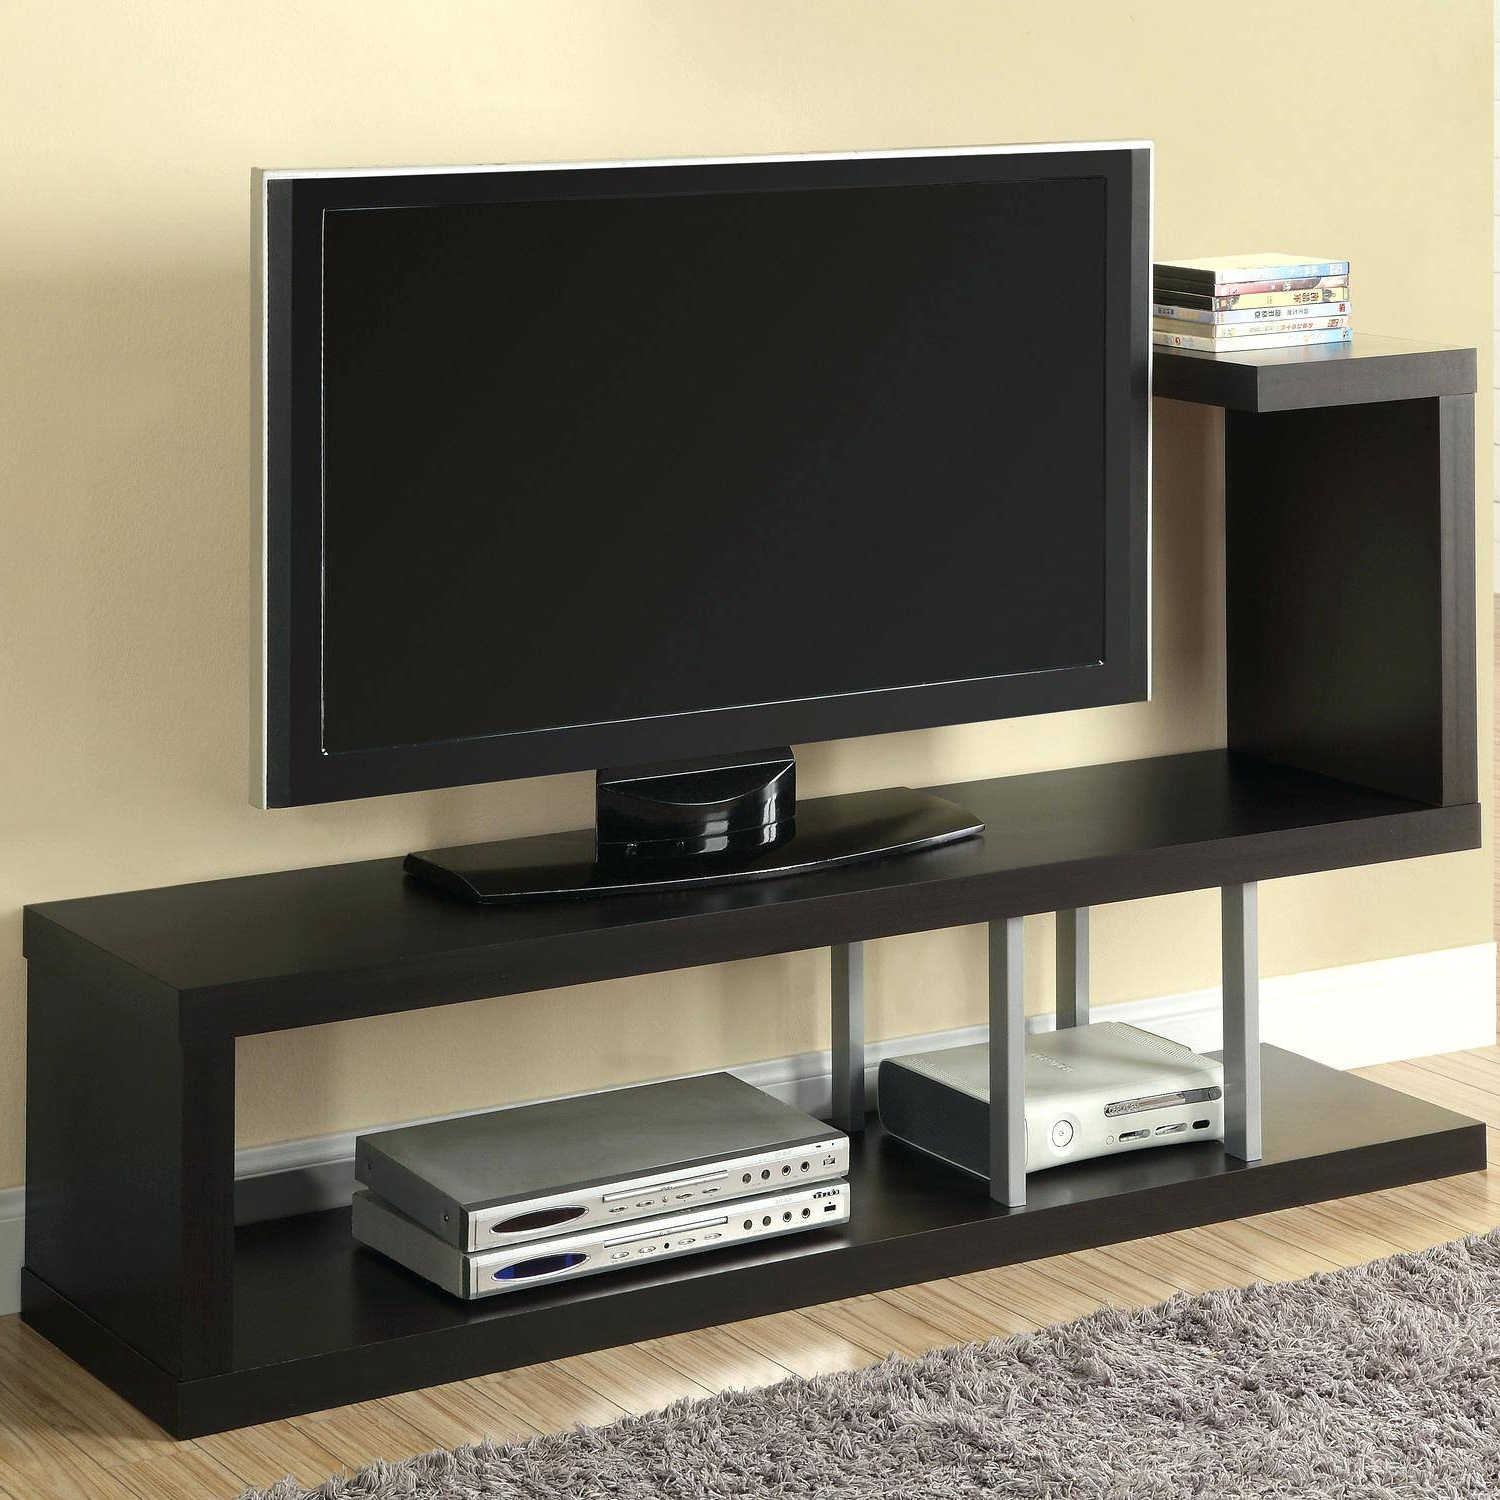 2018 Small Tv Stand Big Stands For Tvs – Buyouapp With Regard To Small Tv Stands (Gallery 13 of 20)